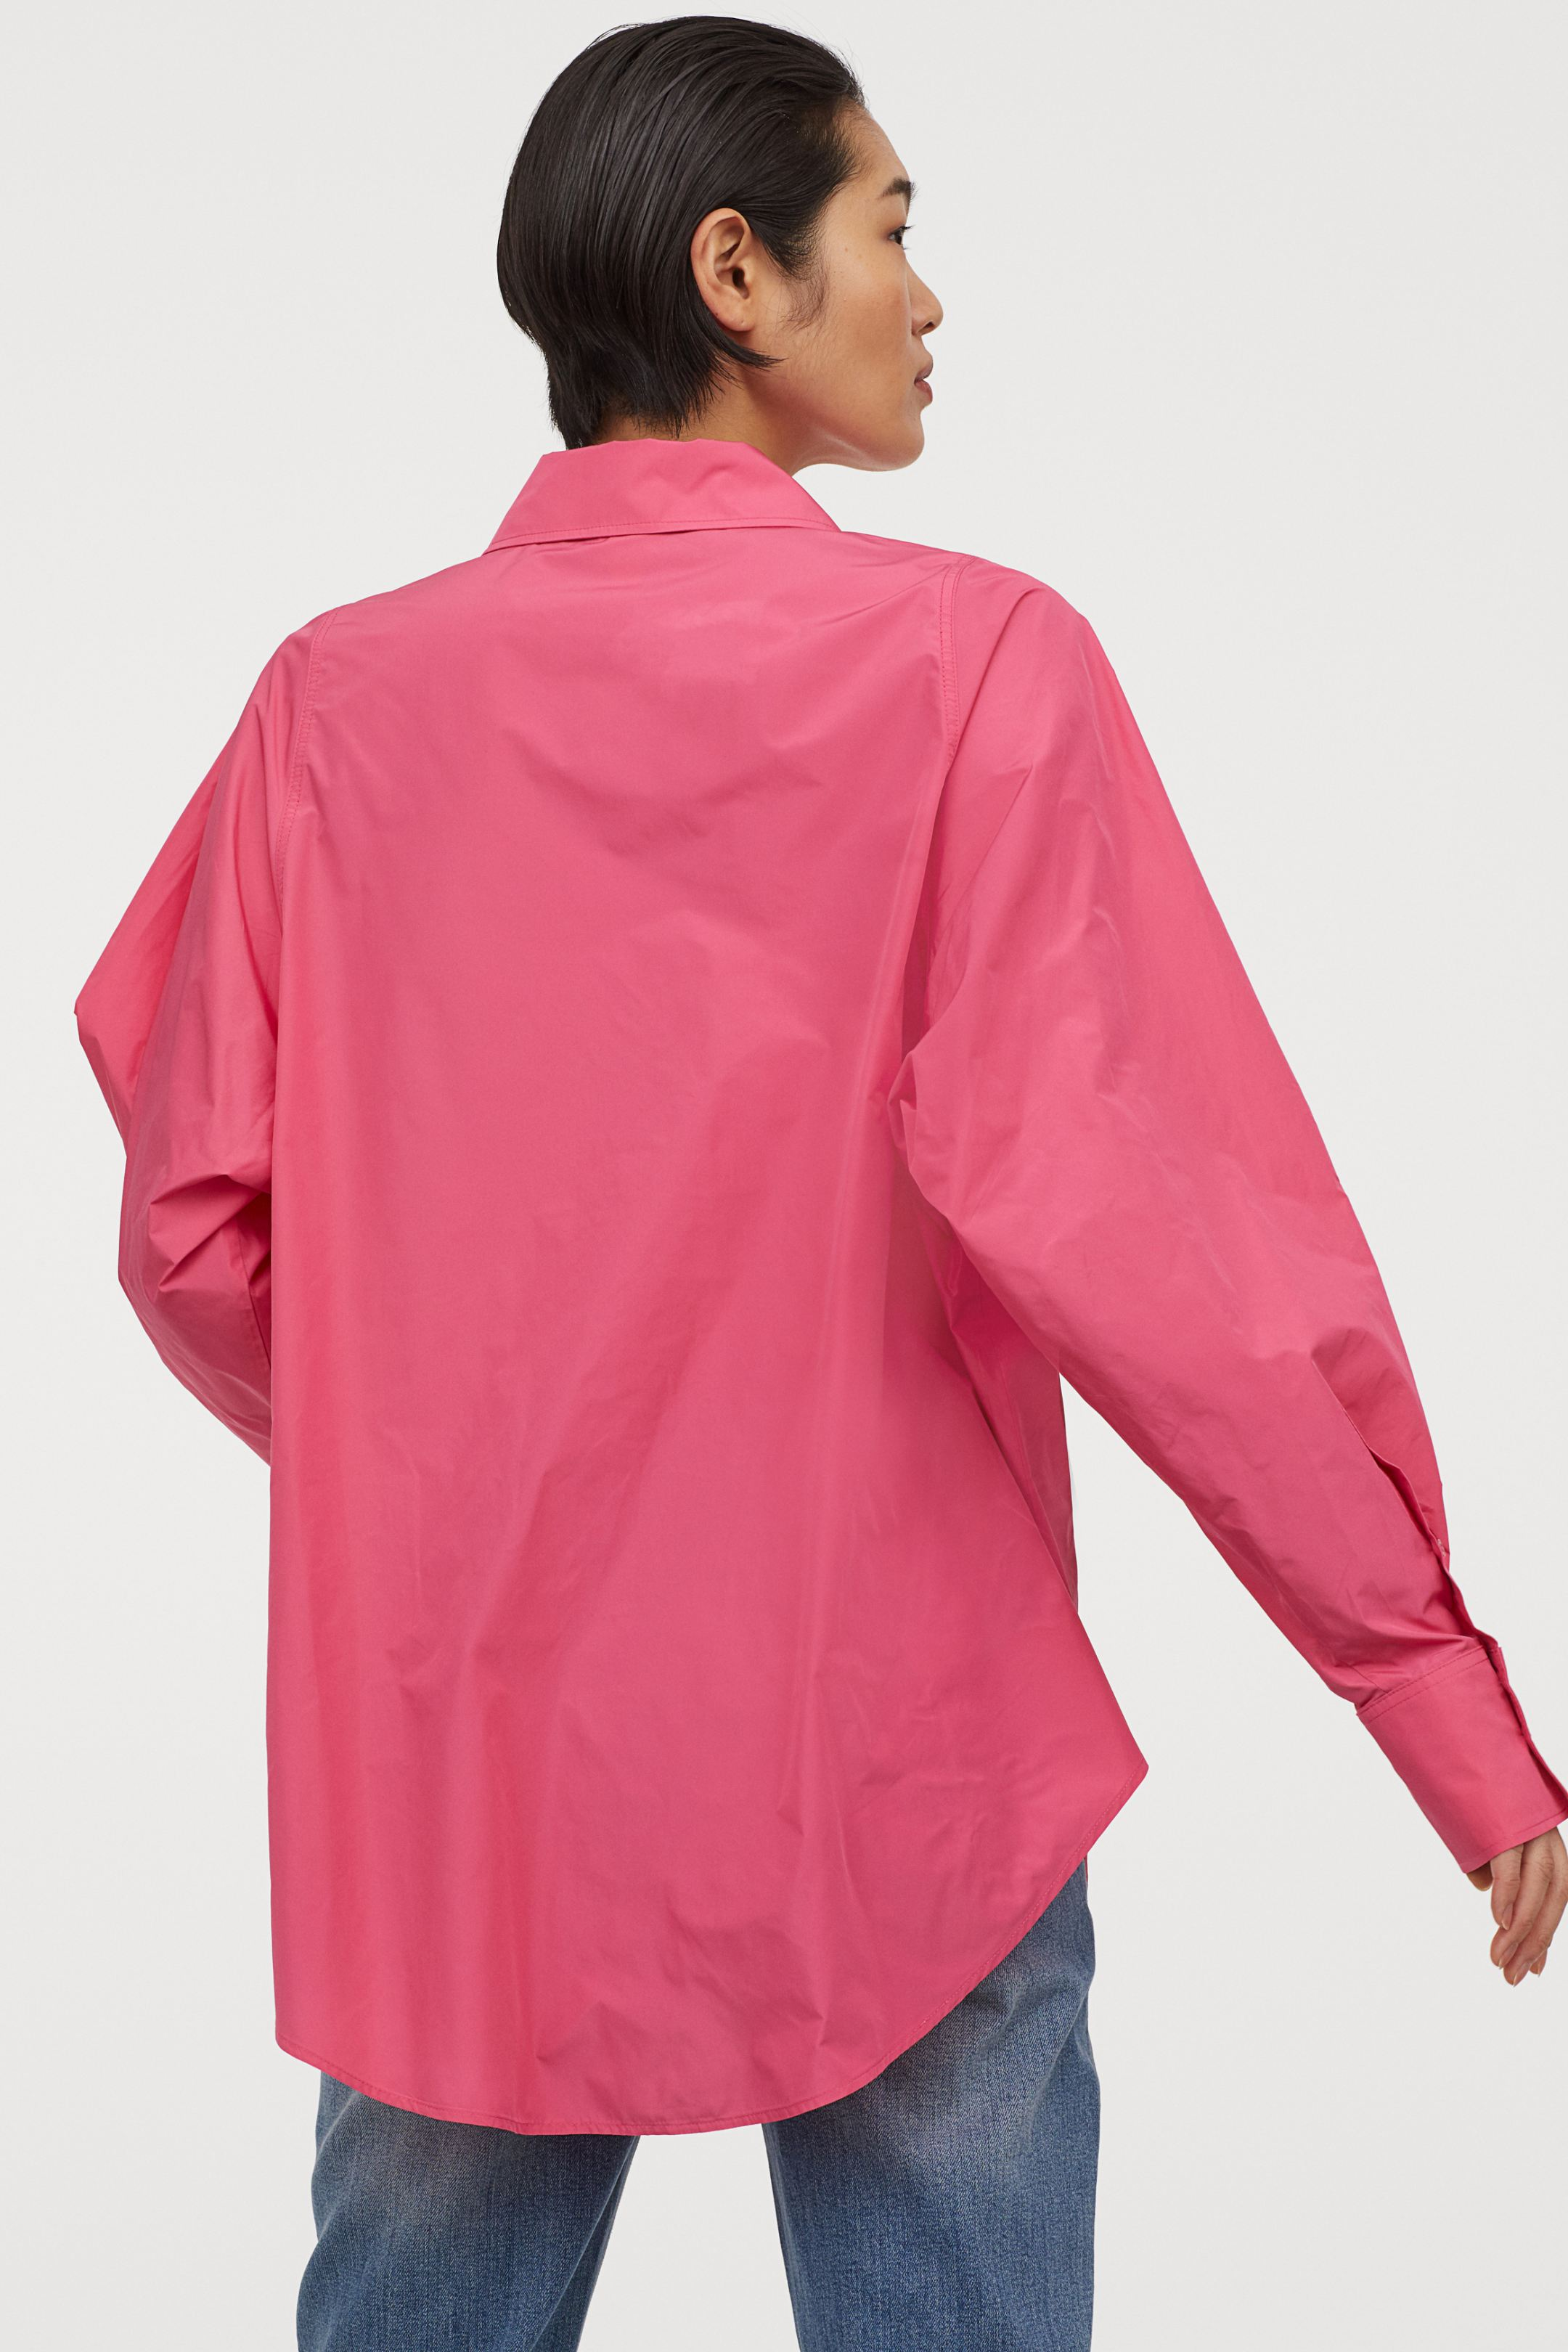 hm-wide-cut-shirt-cerise